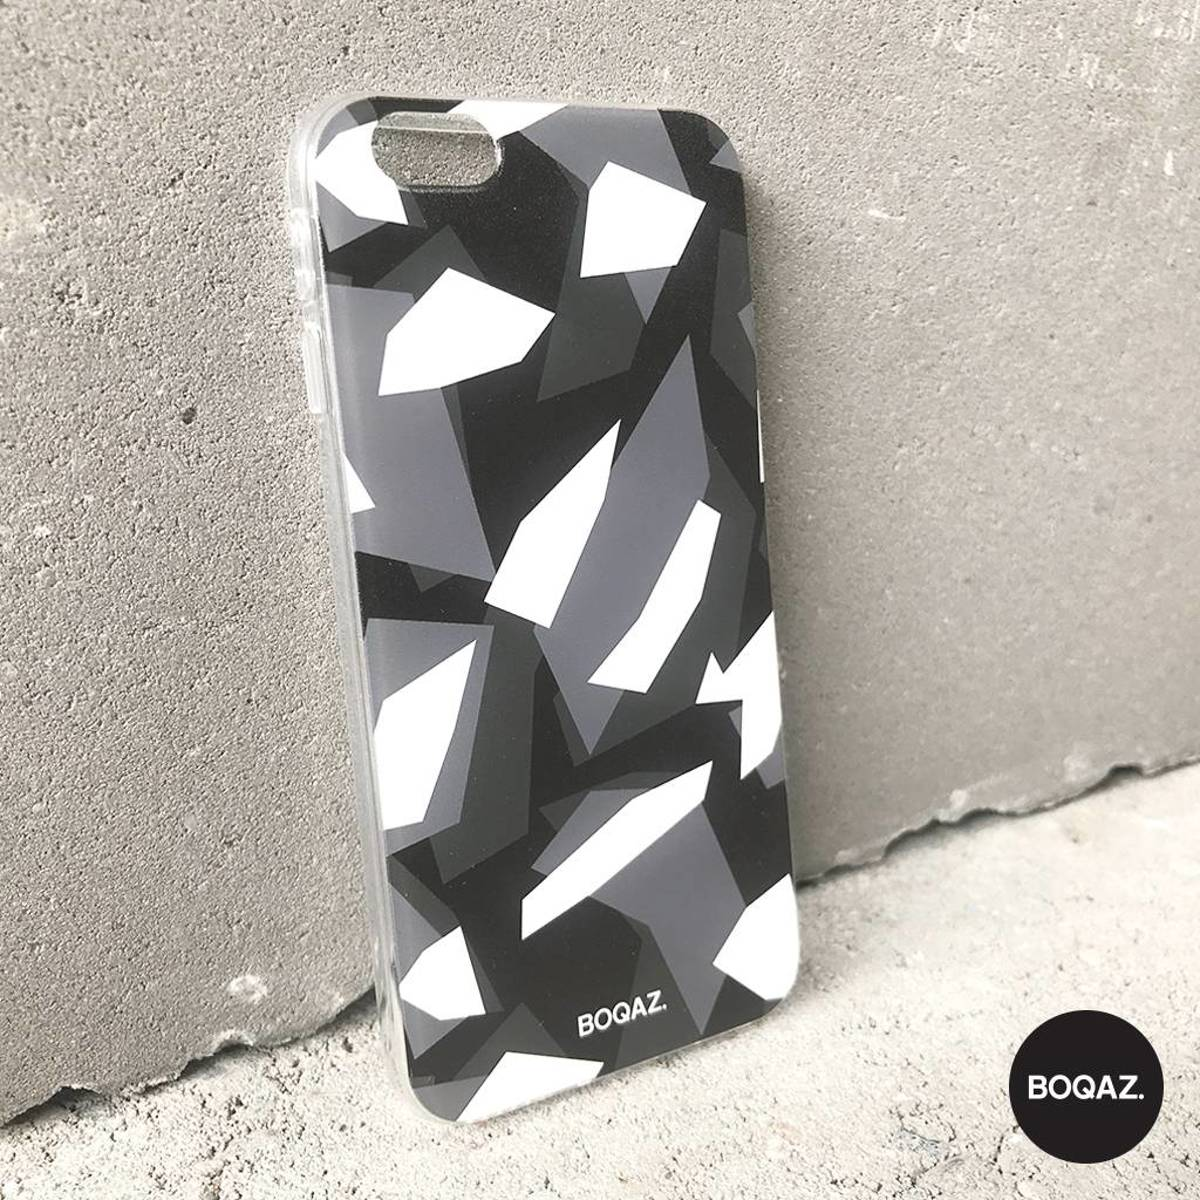 boqaz iphone 8 case